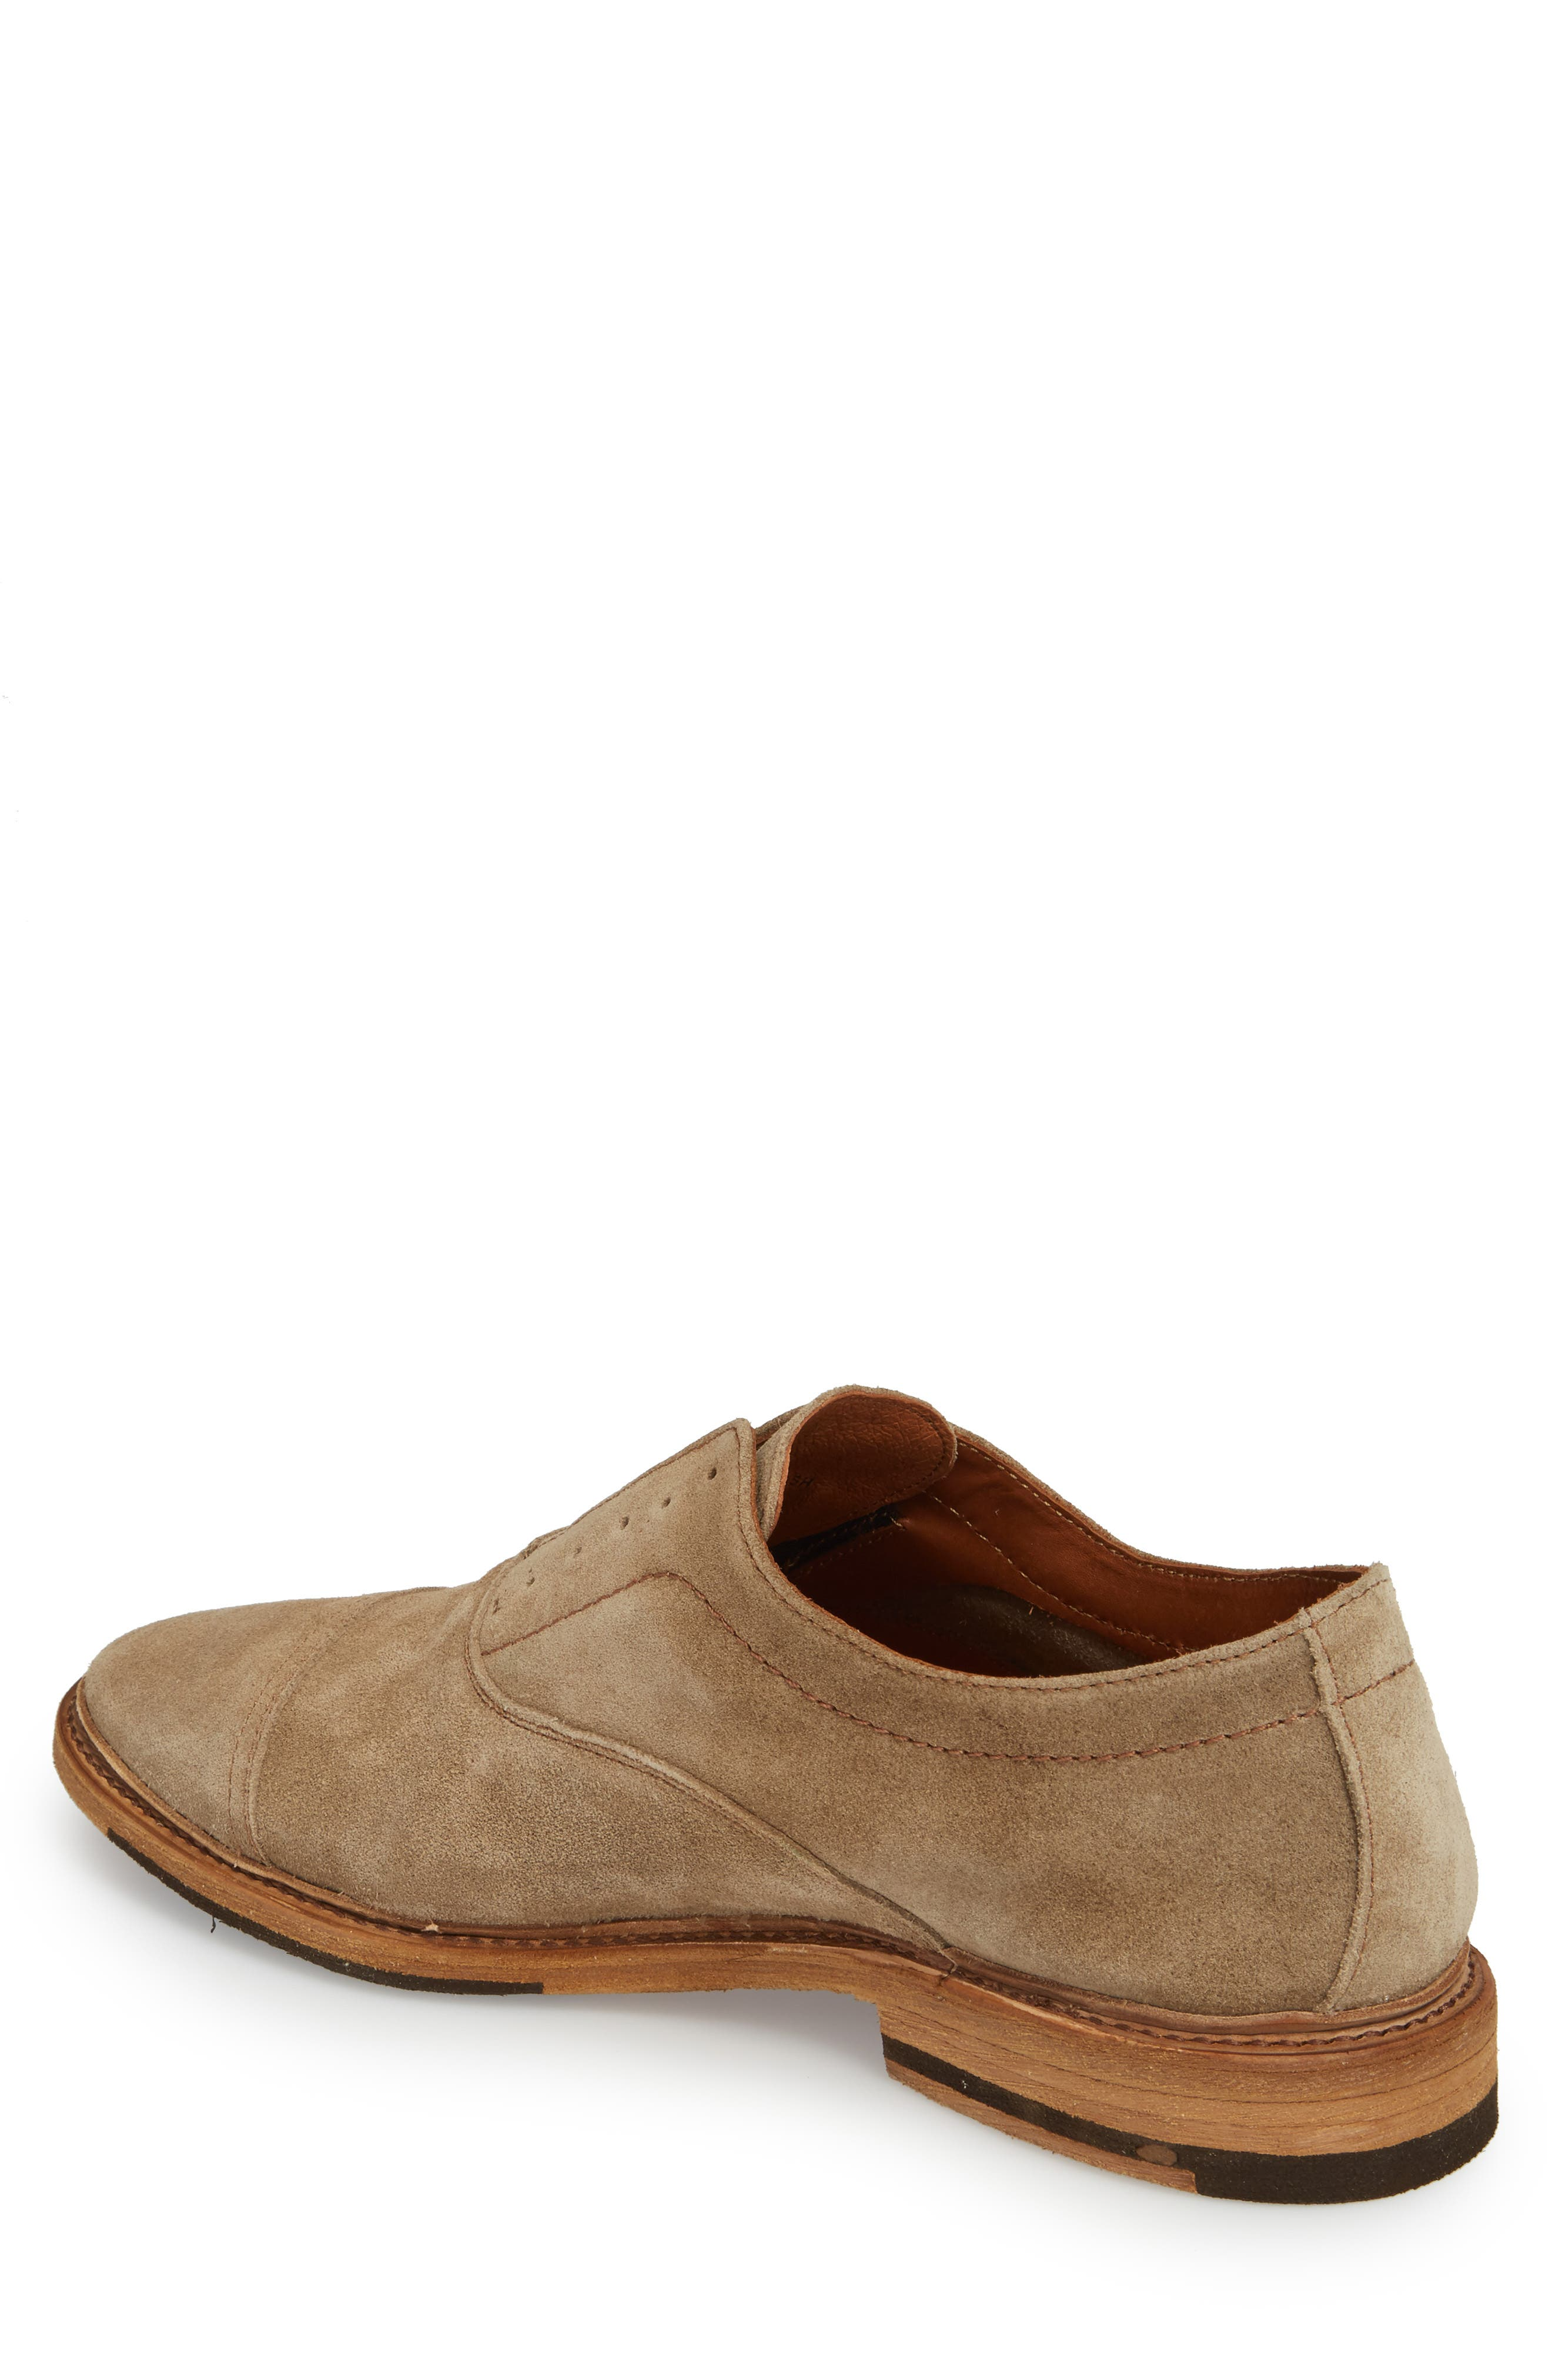 Paul Bal Cap Toe Oxford,                             Alternate thumbnail 5, color,